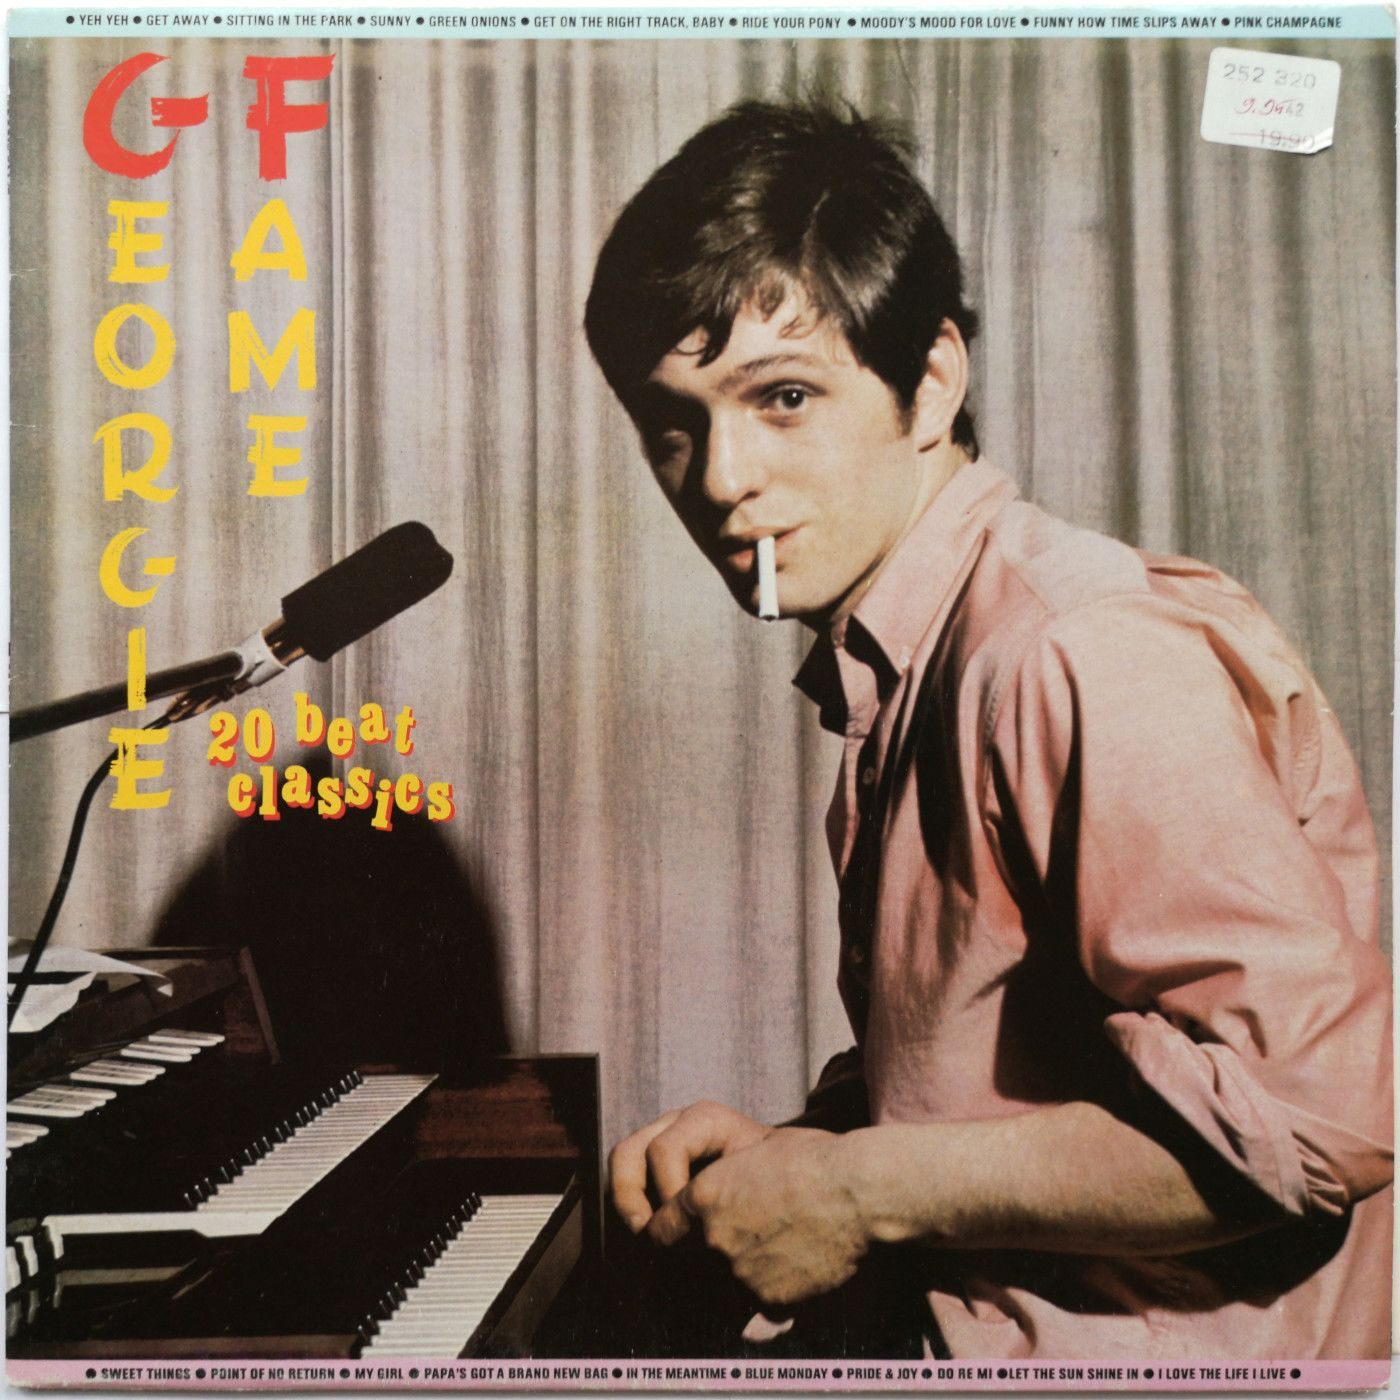 Georgie Fame 20 Beat Classics LP undefined